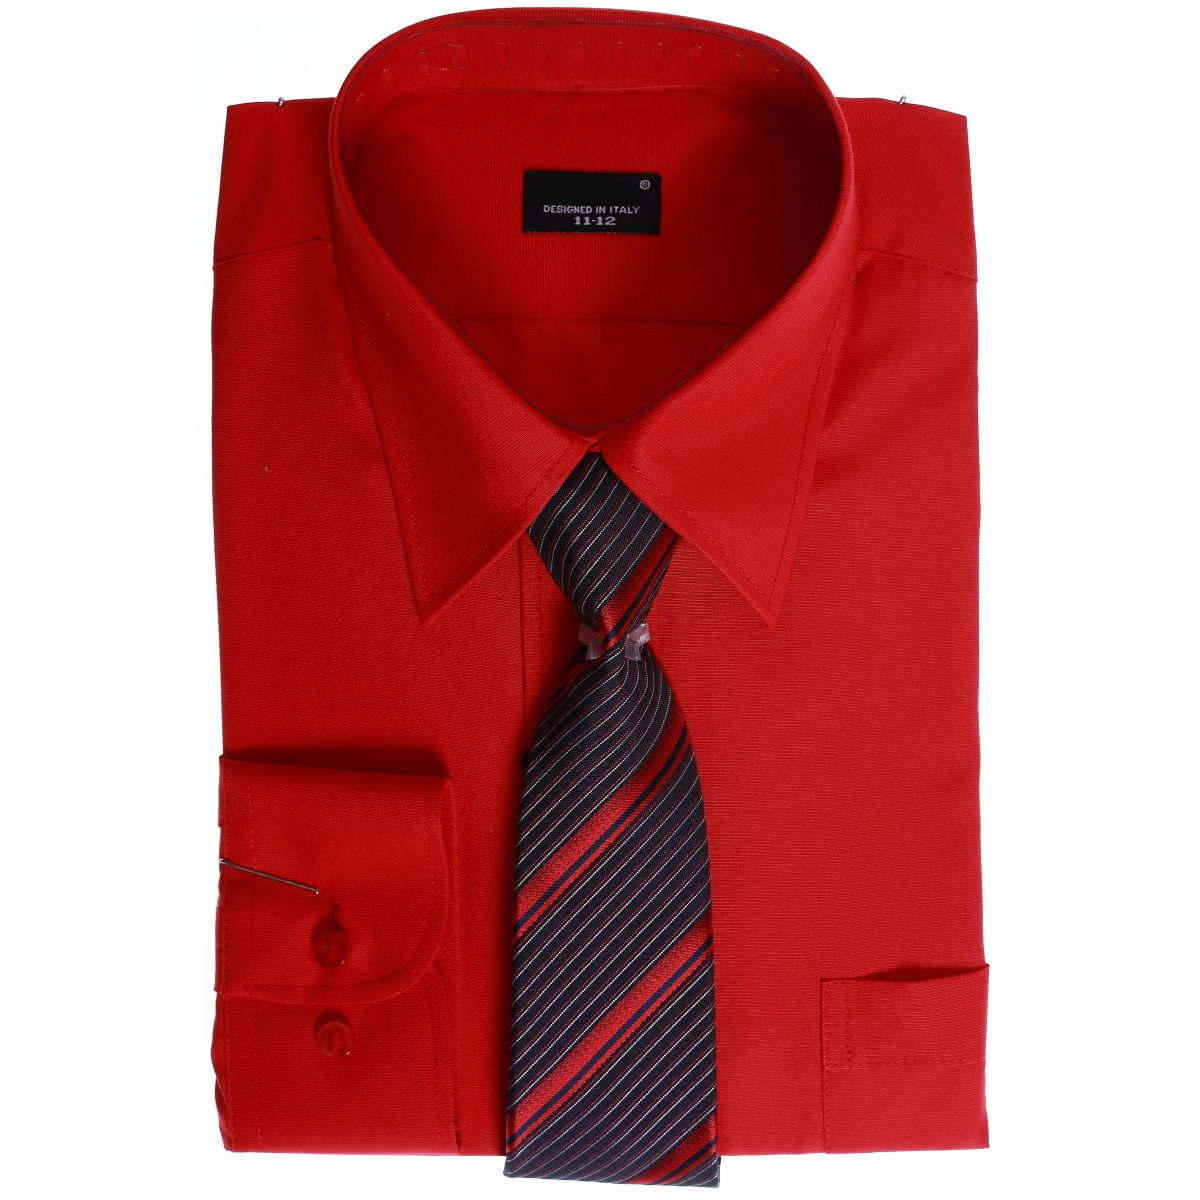 727506852582 High Quality Boys Red Shirt And Tie Set For Formal Occasions. Double tap to  zoom